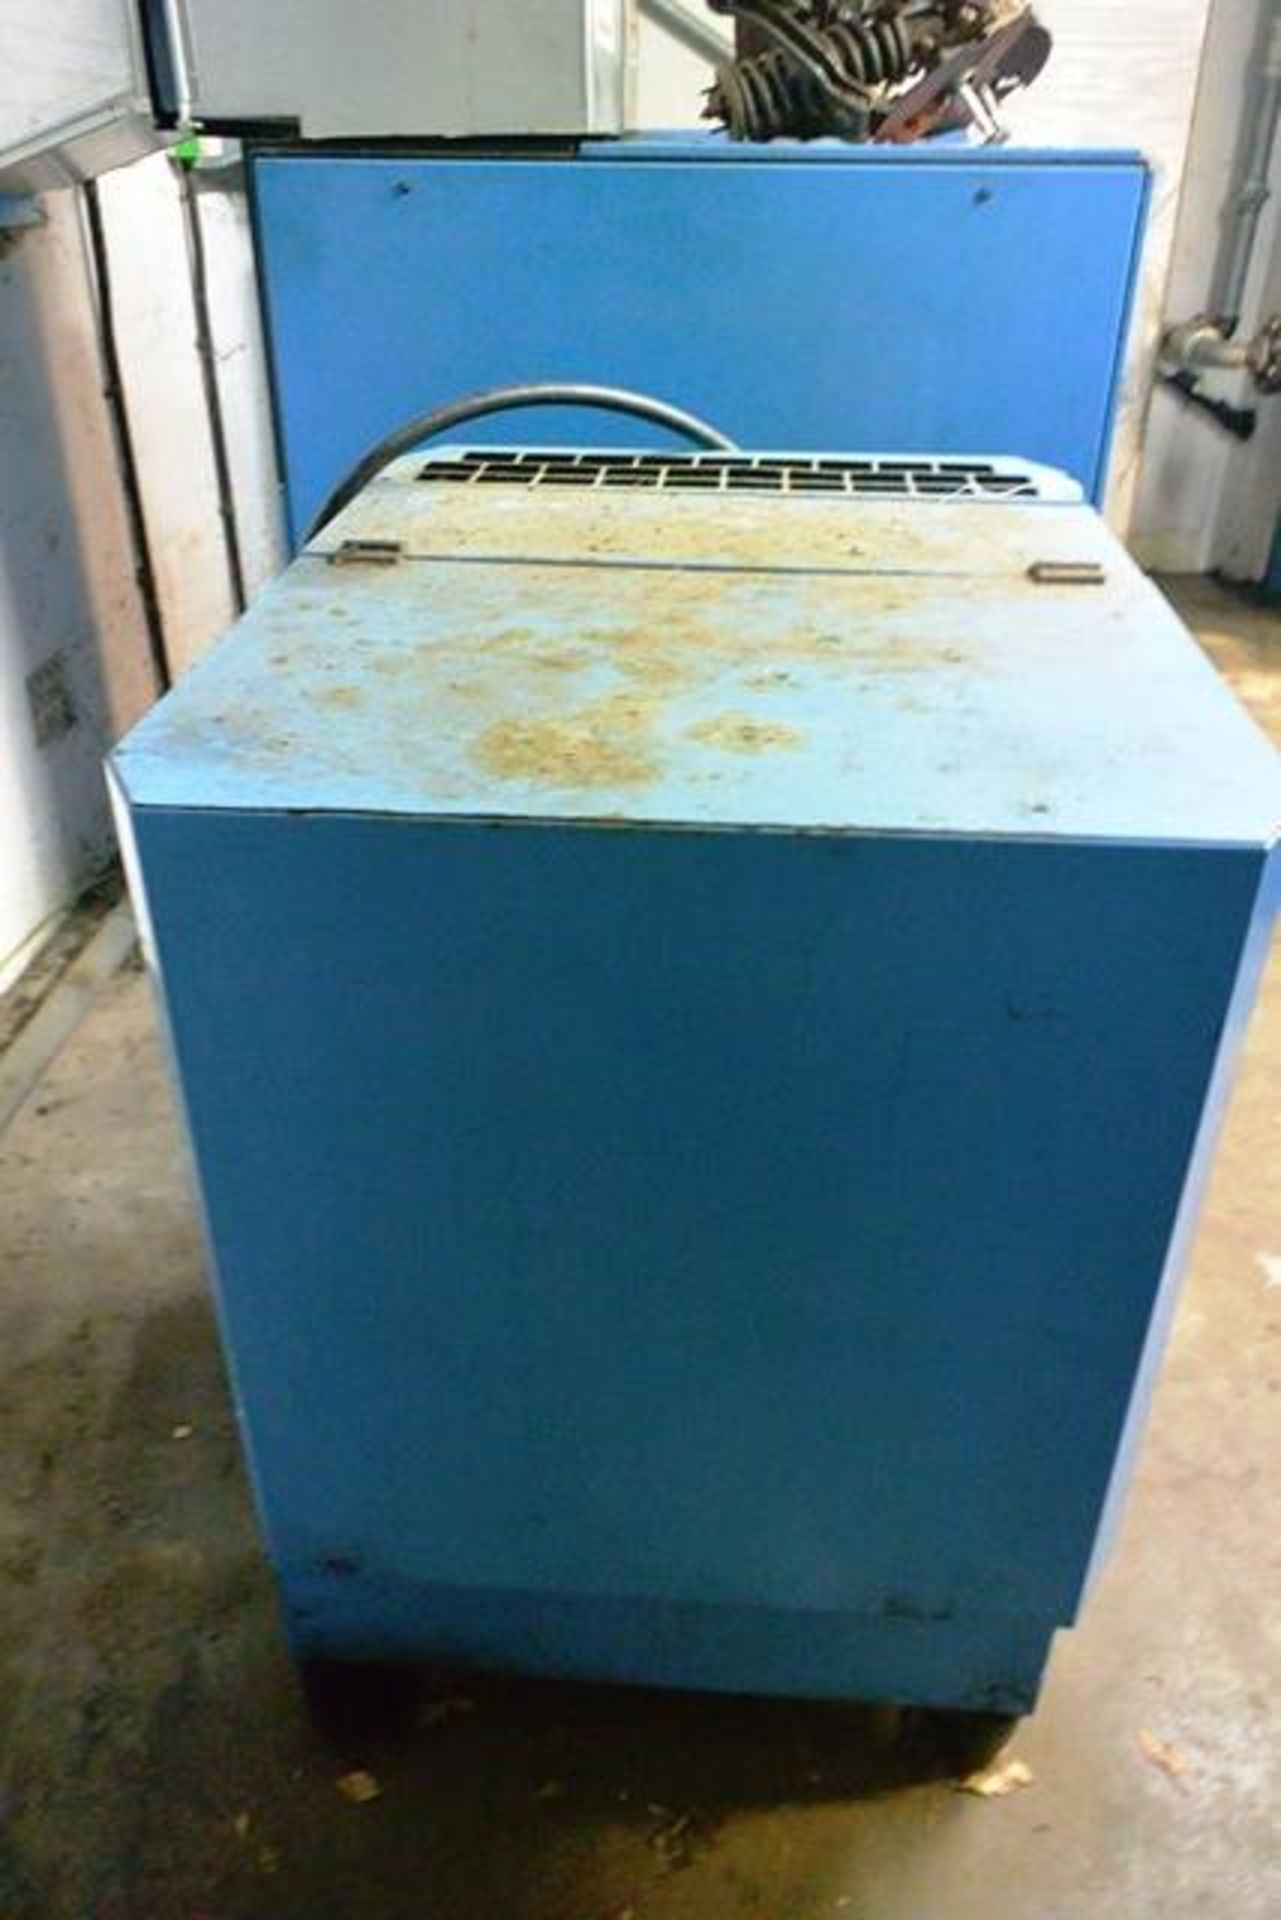 Boge SIS Autotronic air compressor, serial no. 24942 (1997), 10 bar, 11kw, 3 phase (Please note: A - Image 2 of 2